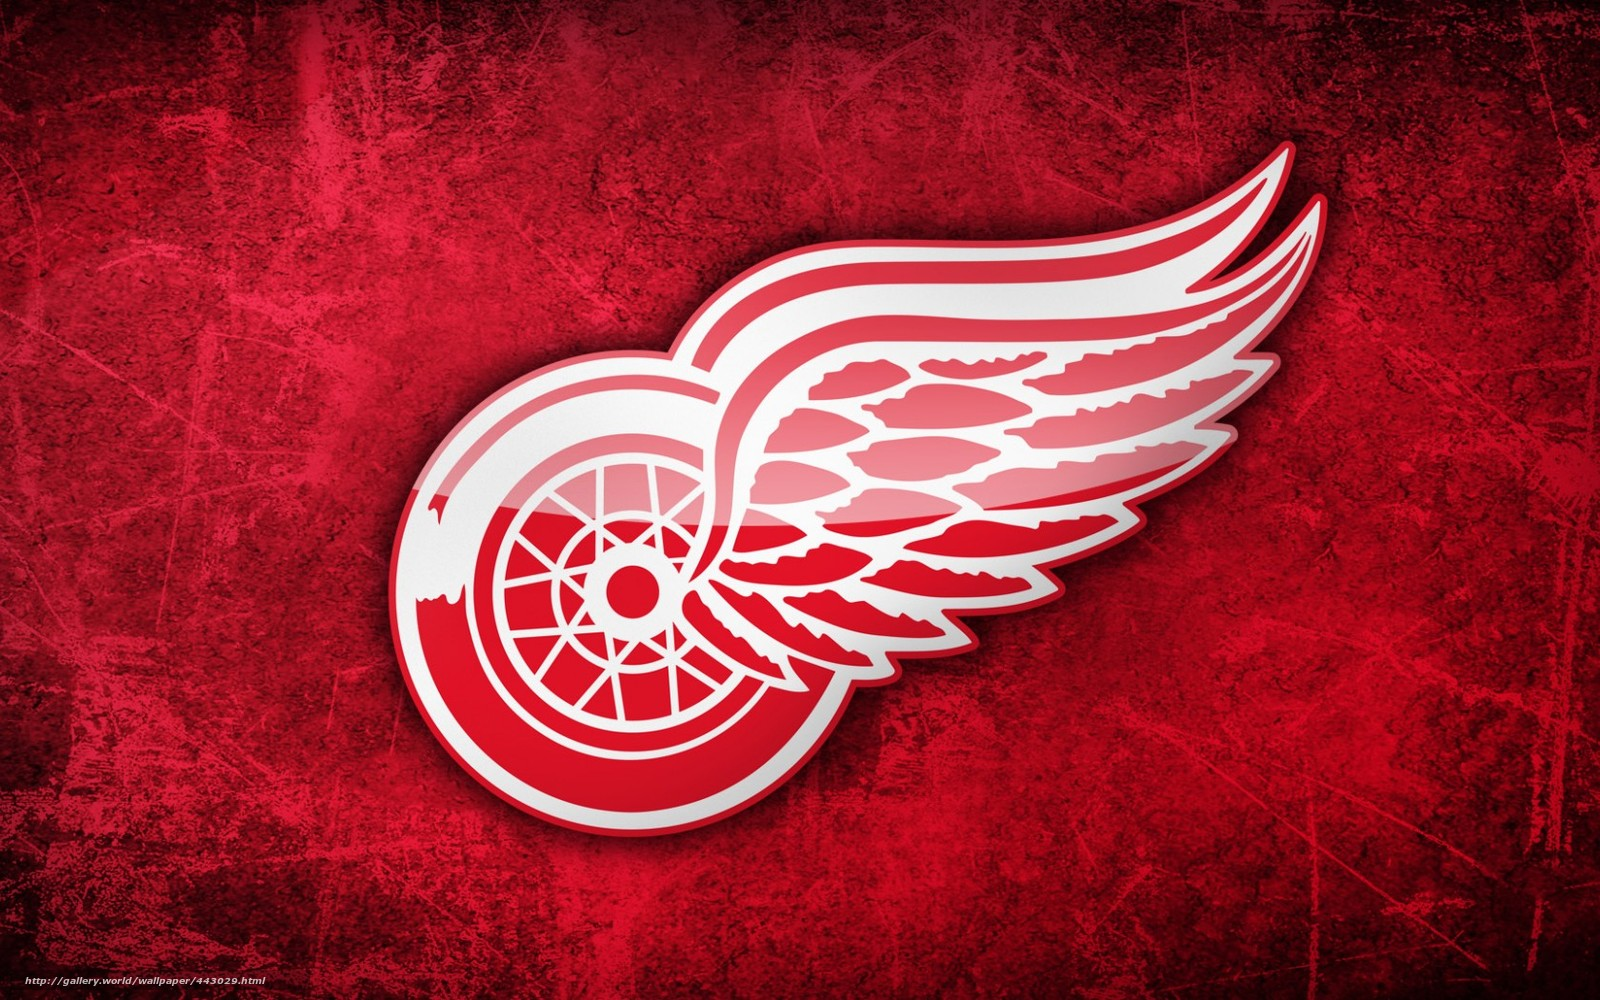 Download wallpaper NHL Detroit desktop wallpaper in the 1600x1000